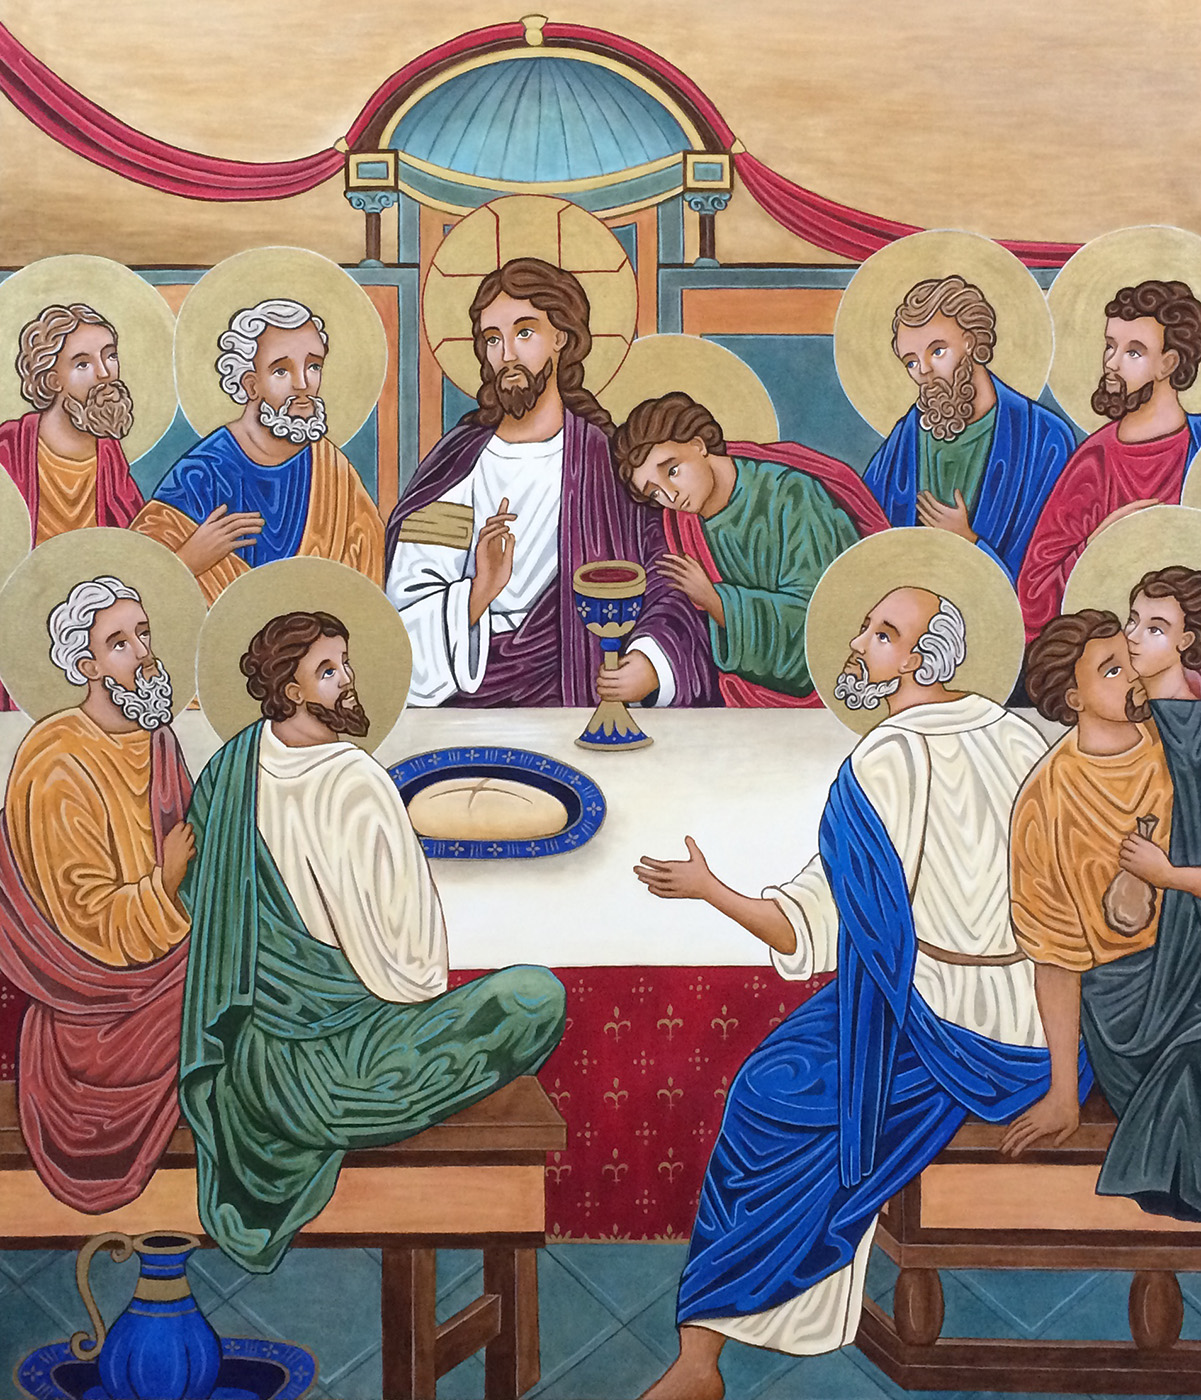 Institution of the Eucharist - At the Passover meal with His apostles, Jesus institutes the New Covenant when He blesses the bread and wine, changing them into His body and blood. The gesture of Jesus' blessing hand shapes the letters ICXC—an abbreviation using the first and last letters of the Greek words, Jesus (IHCOYC) and Christ (XPICTOC)—and so He blesses with His Holy Name. Notice the reactions and emotions of the apostles (back row: Andrew, Peter, (Jesus), John, Jude, James the Greater; front: Matthew, James the Less, Simon, Judas, and Philip). Part of two halos at the sides are for Thomas and Bartholomew, but also suggest that the scene continues out beyond what is shown. In fact, it continues out to us as we are included in this timeless act of sacrifice with our offering of the Eucharist at each Mass. The tabernacle becomes a three-dimensional element emerging from the two-dimensional scene, and Jesus becomes truly present for us in the Eucharist.Notice how the people in the icons are illuminated from within. As we each have an immortal soul, made in the image and likeness of God, and are temples of the Holy Spirit, the degree to which a person embraces those truths is reflected in how much we can see the light which is within them. The light is streaming out of the eyes of Jesus and shining through His skin; He also has a halo, signifying light emanating from His head. In contrast, Judas the betrayer has shrouded his light with self-interest and greed, and so he is less illuminated and has no halo. He grasps his sack of 30 silver coins, and turns away from the covenant meal.